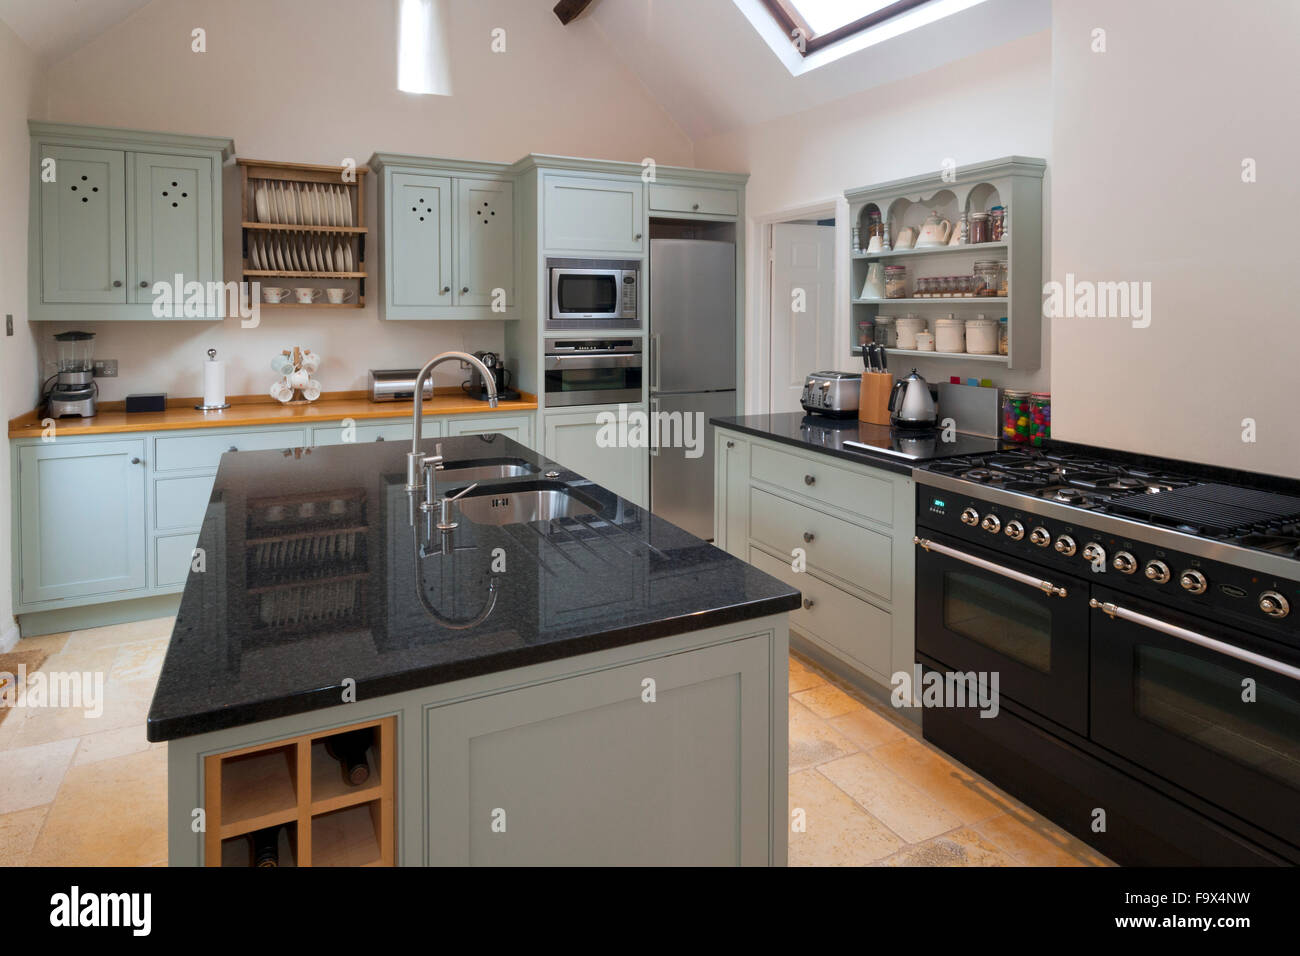 Contemporary kitchen. - Stock Image